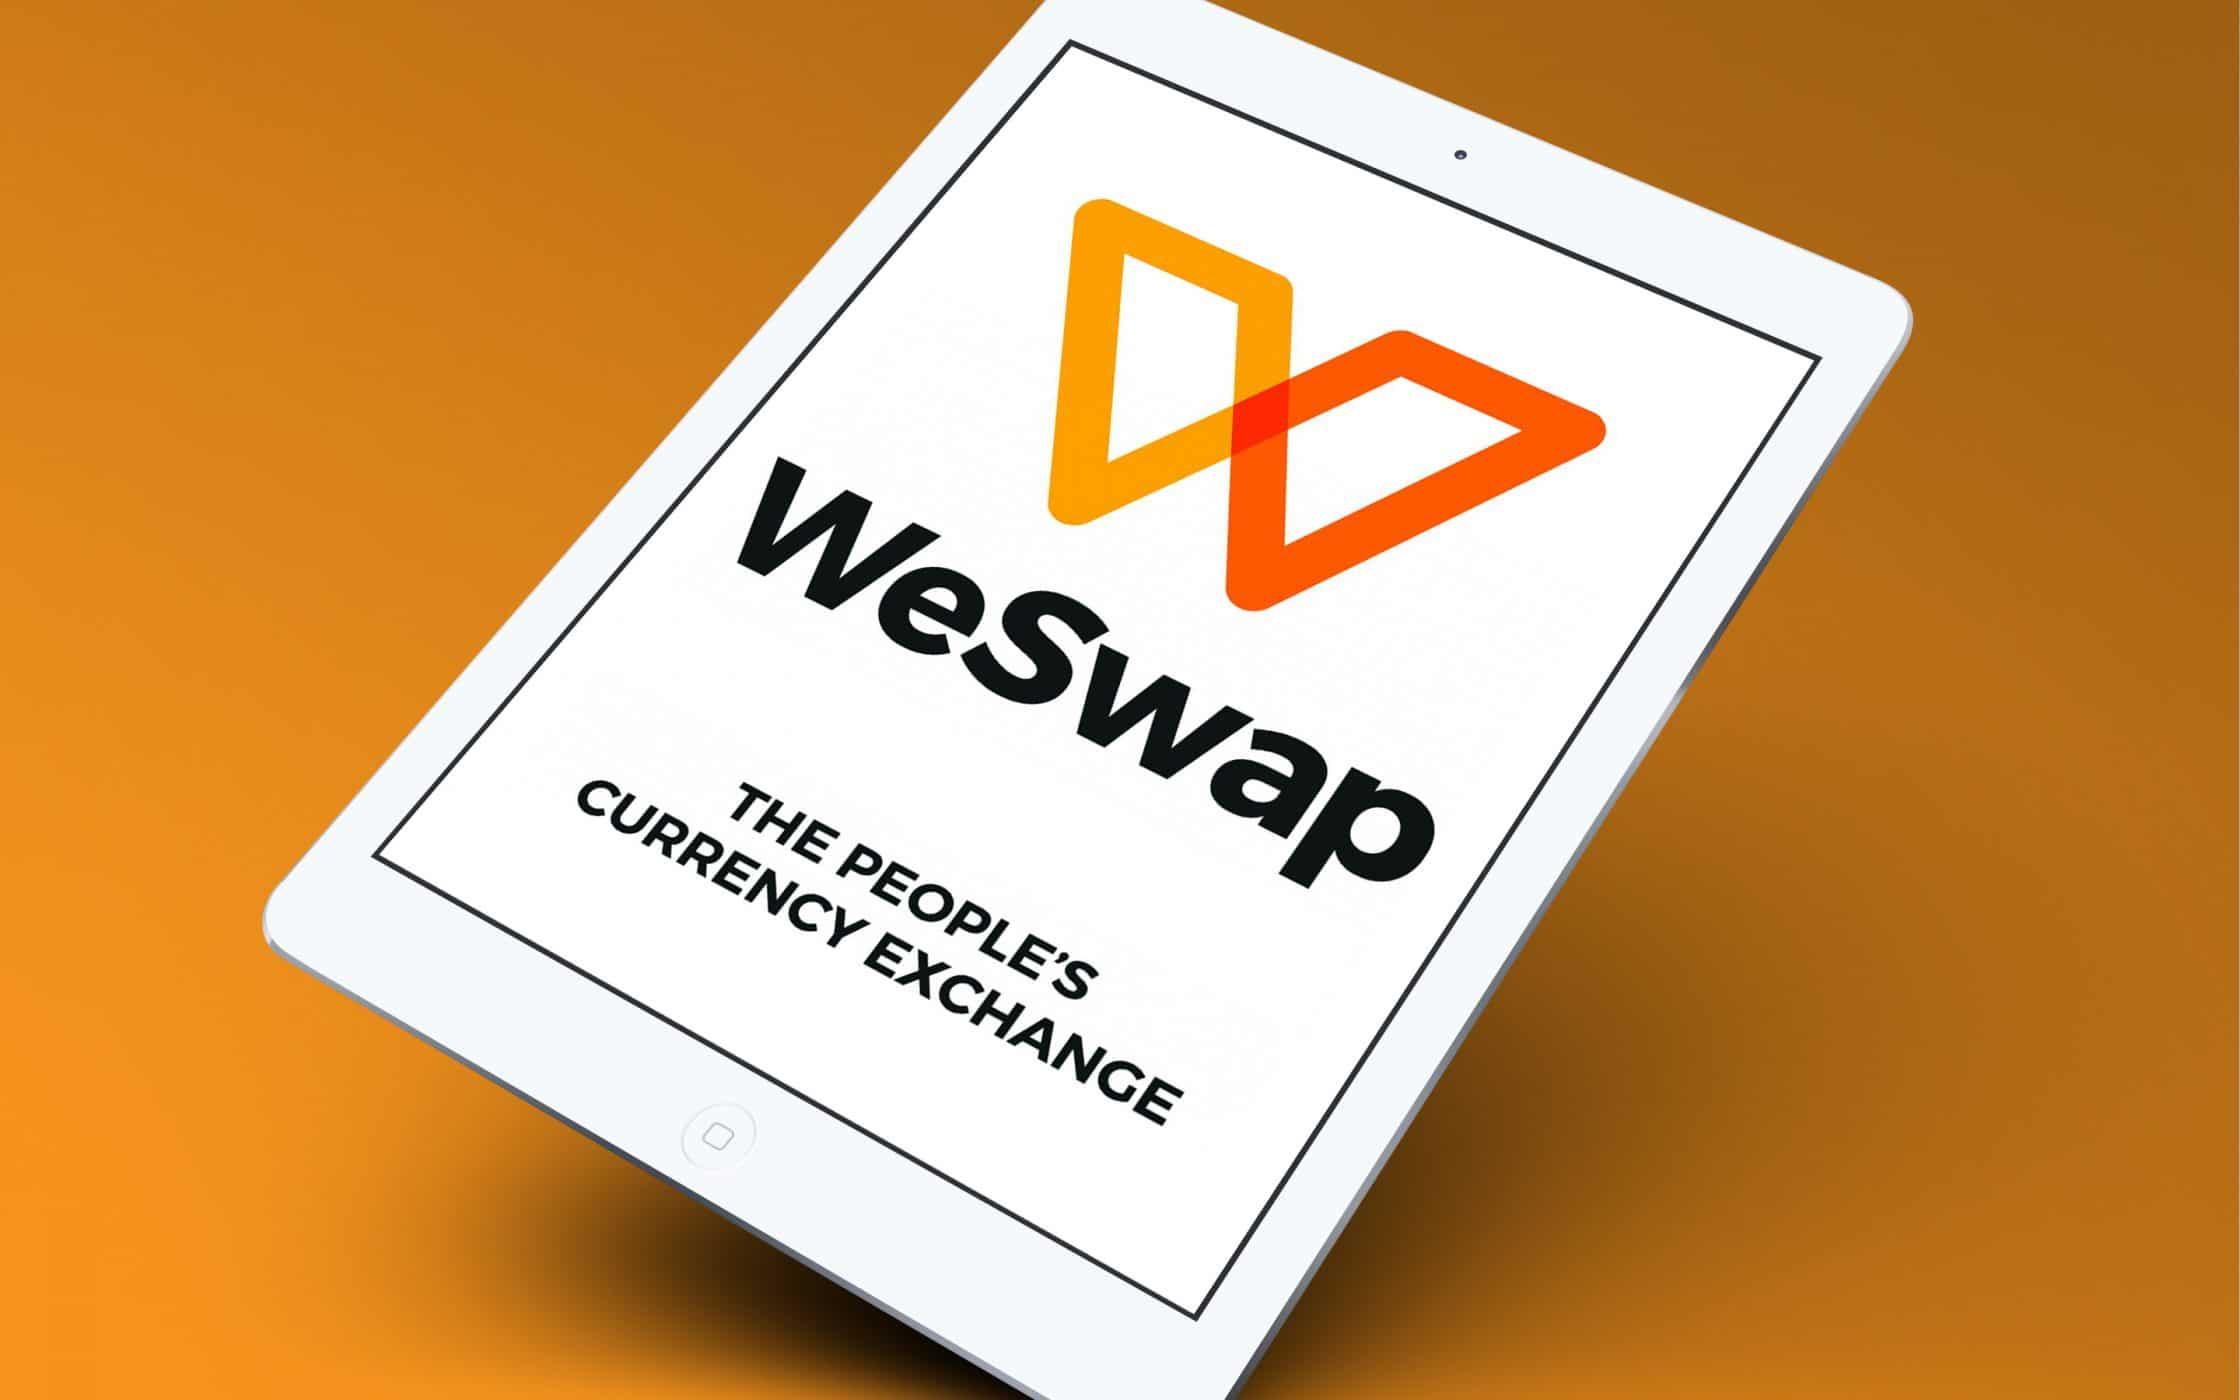 Breakthrough Brands Weswap A New Frontier To Simplify Currency Exchange